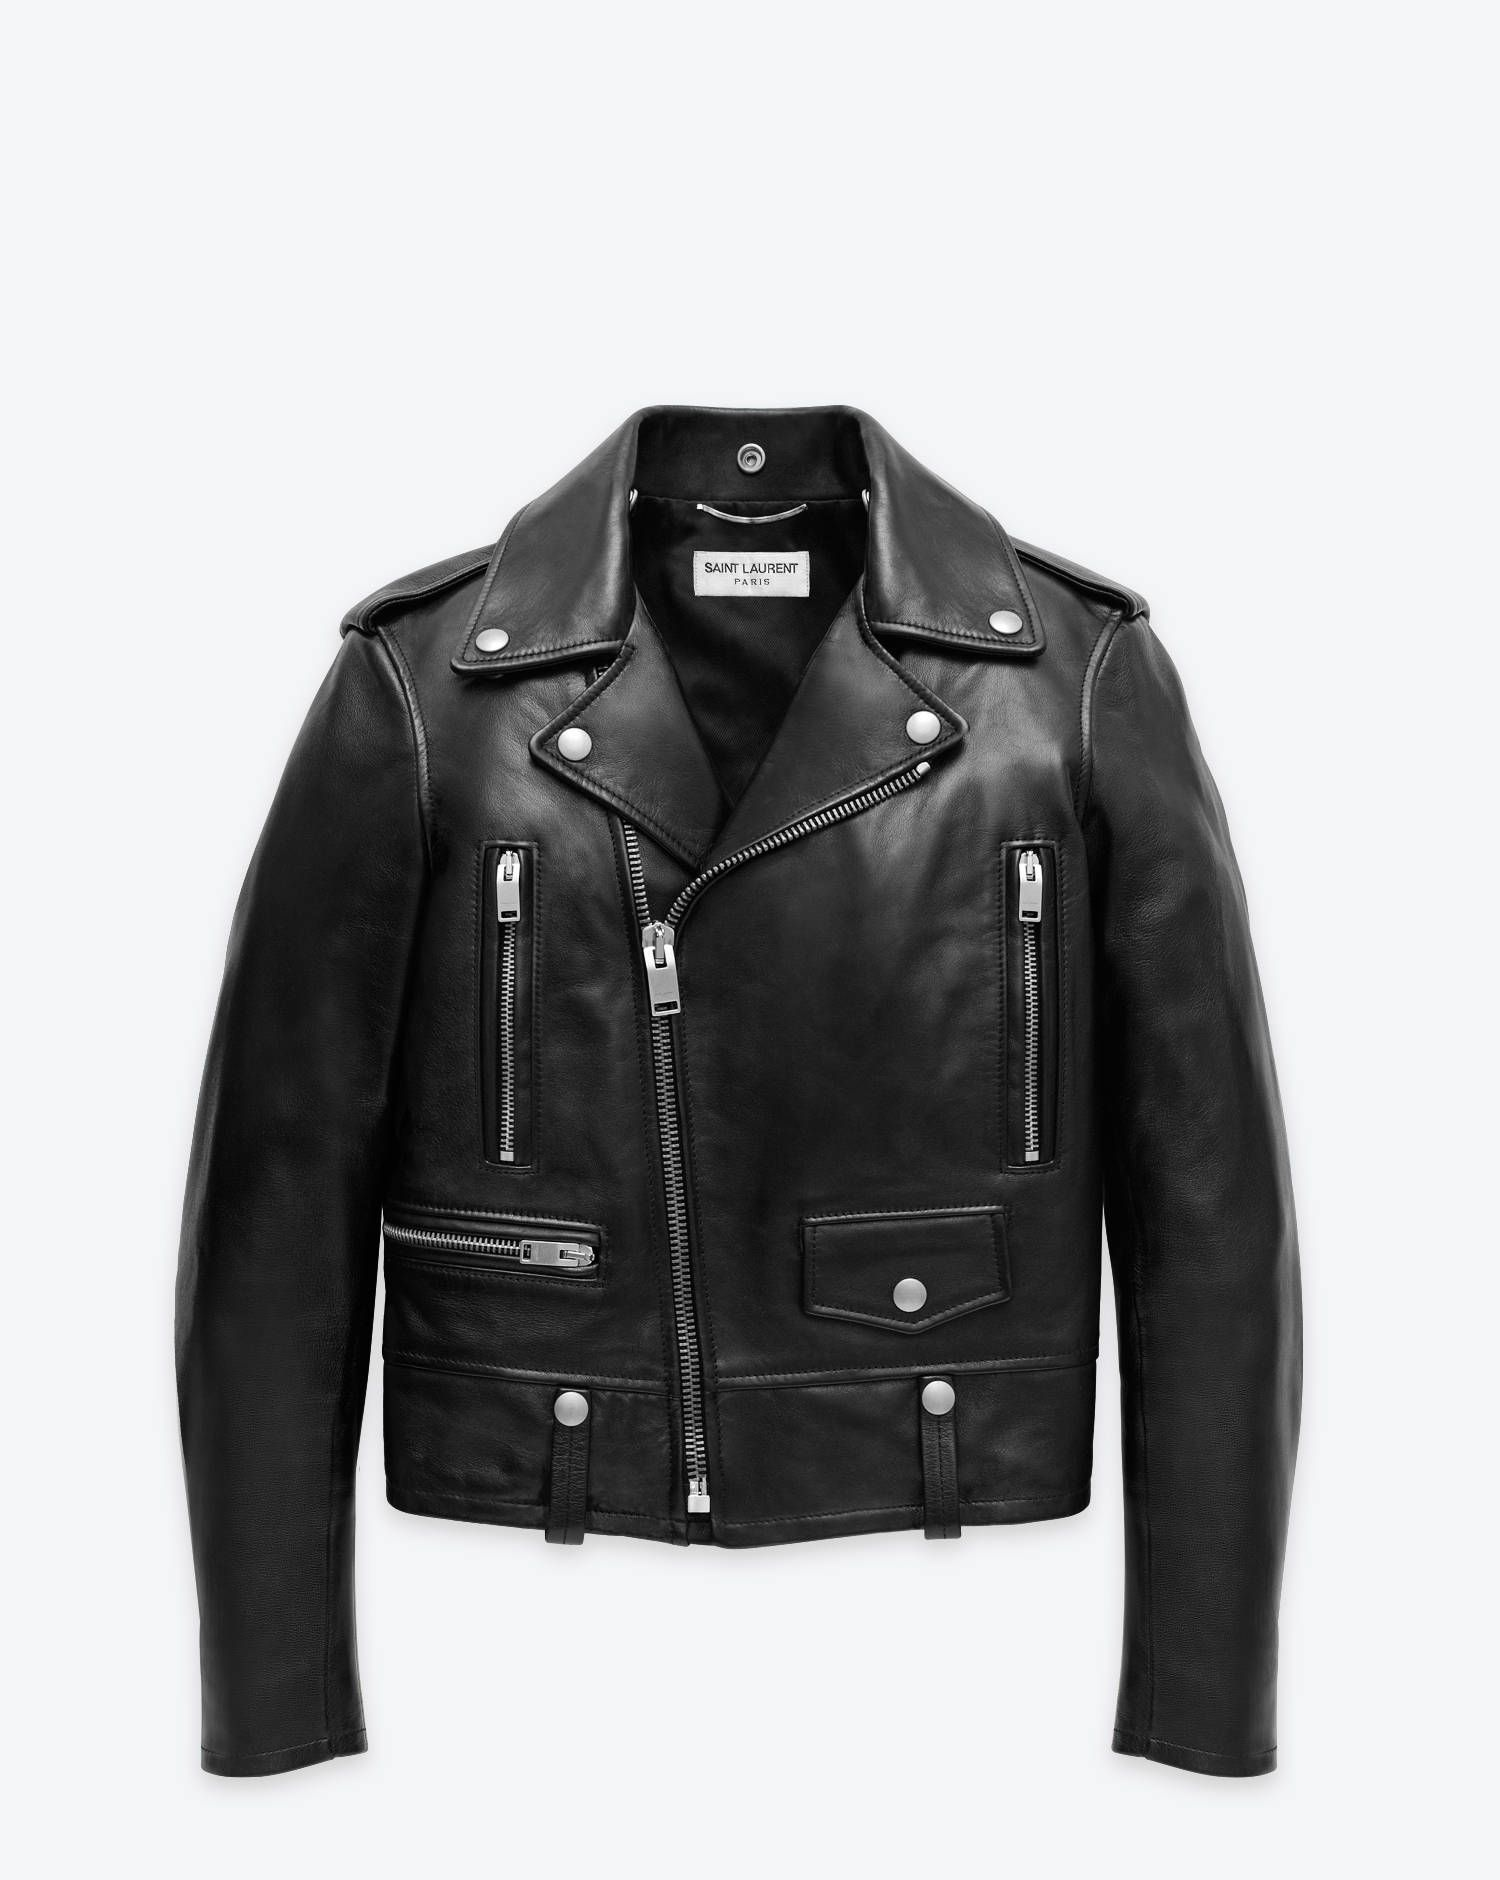 e13bf3c01d L01 Classic Motorcycle Jacket in Black Leather - Leather Jackets ...